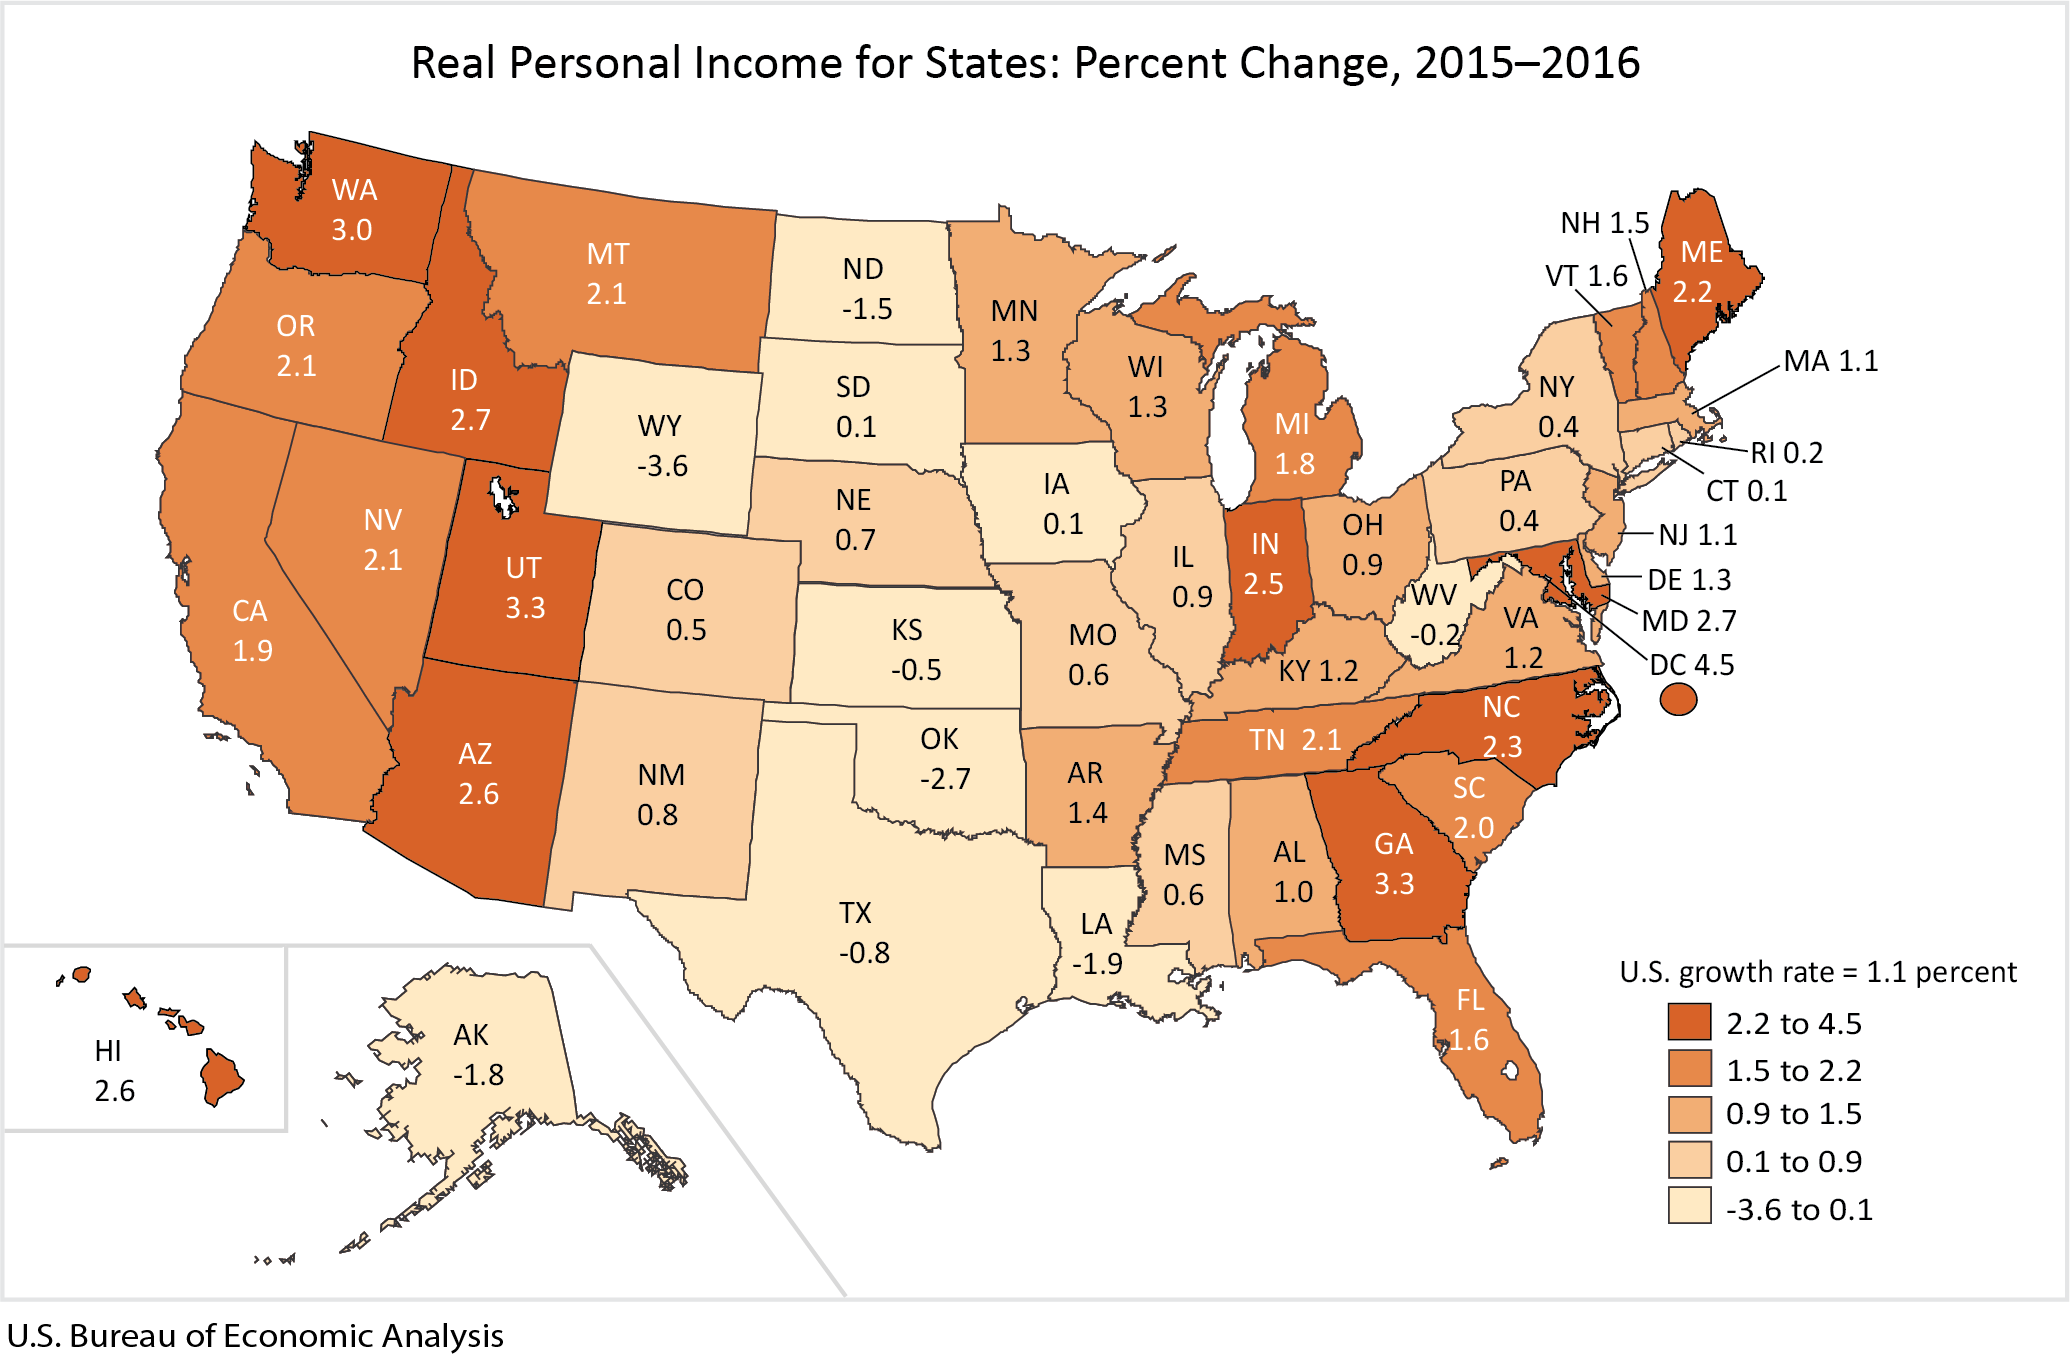 Real Personal Income for States and Metropolitan Areas, 2016 Map